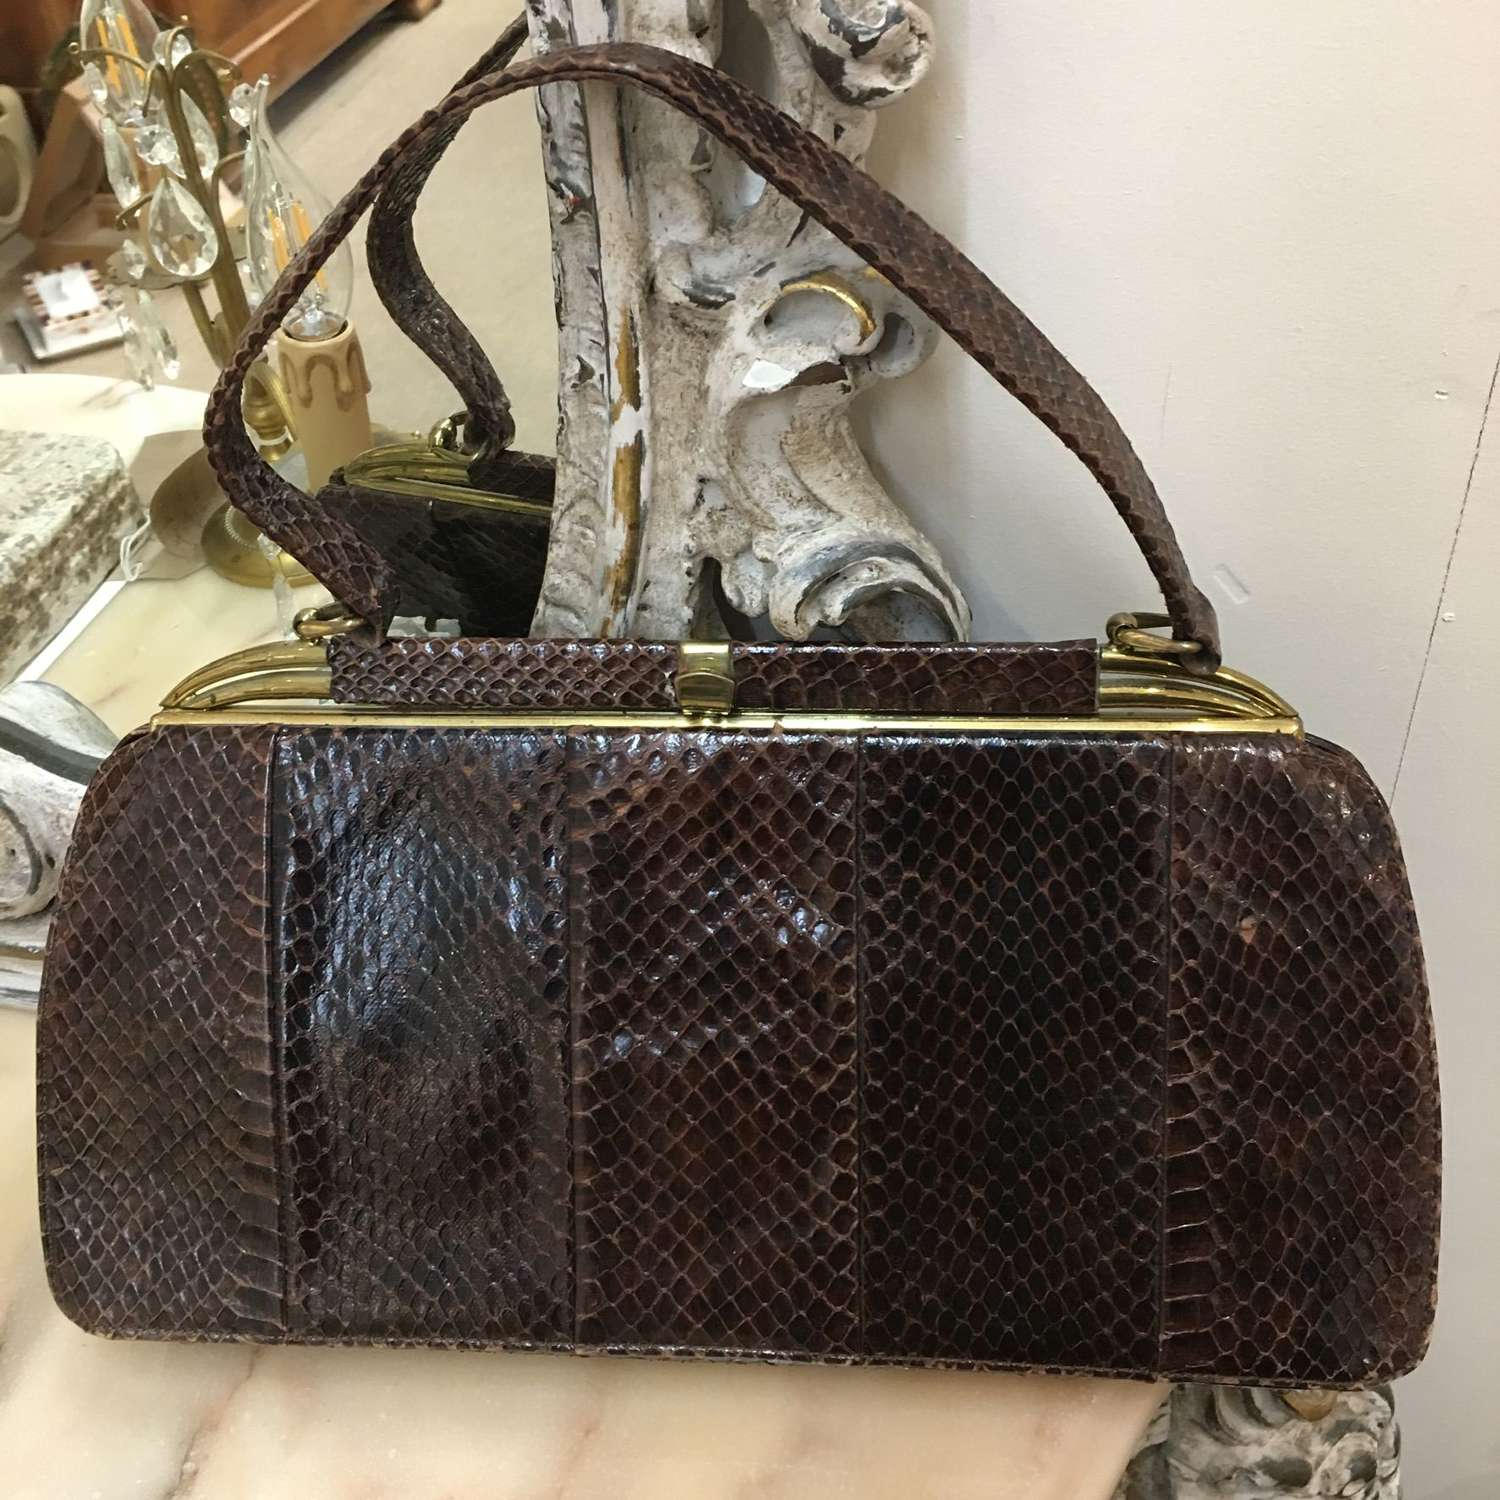 Dark brown vintage snakeskin handbag